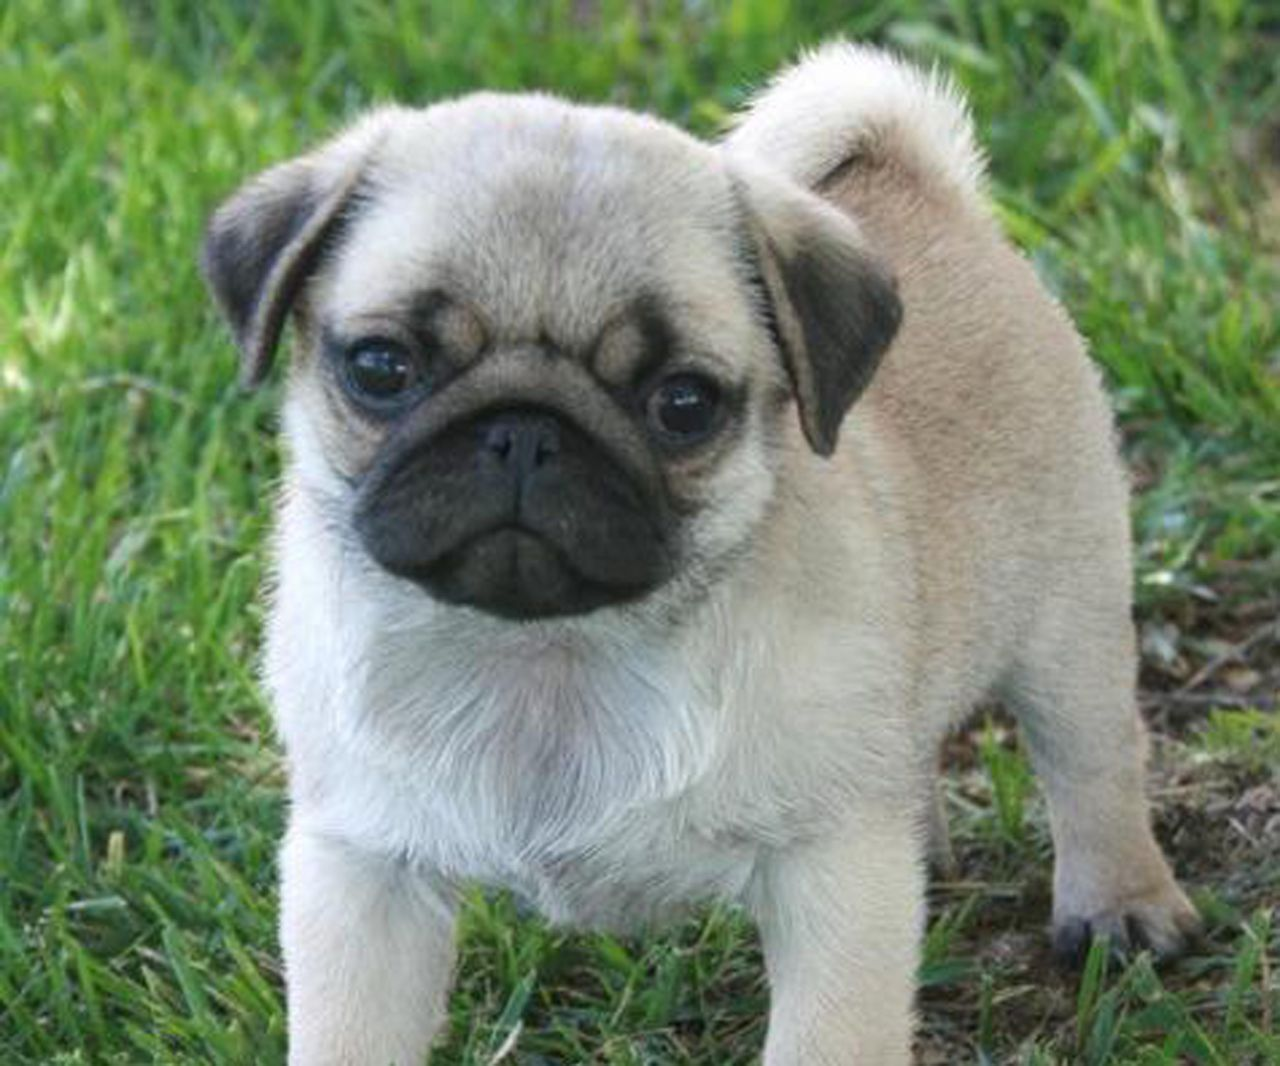 47 Very Cute Pug Puppy And s